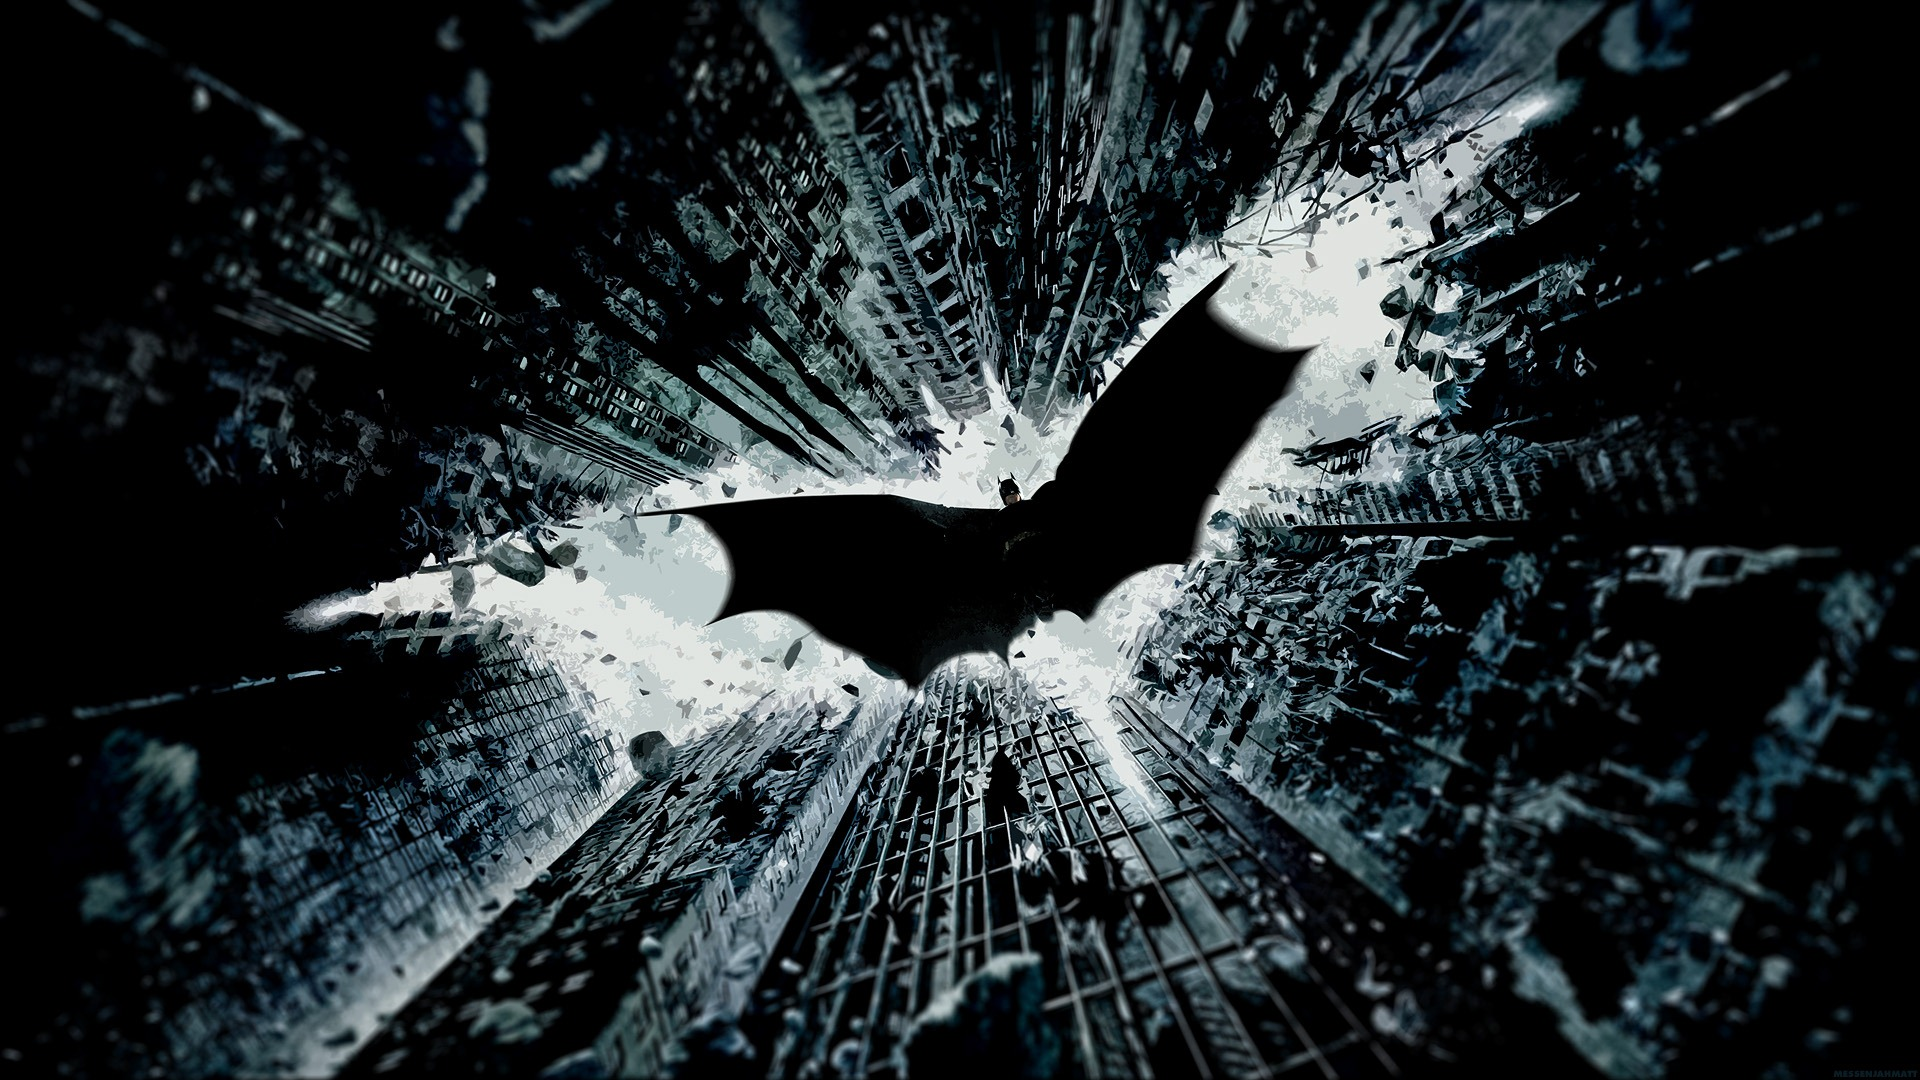 Batman The Dark Knight Rises HD Wallpapers 1920x1080   Wallpaper Hd 3D 1920x1080